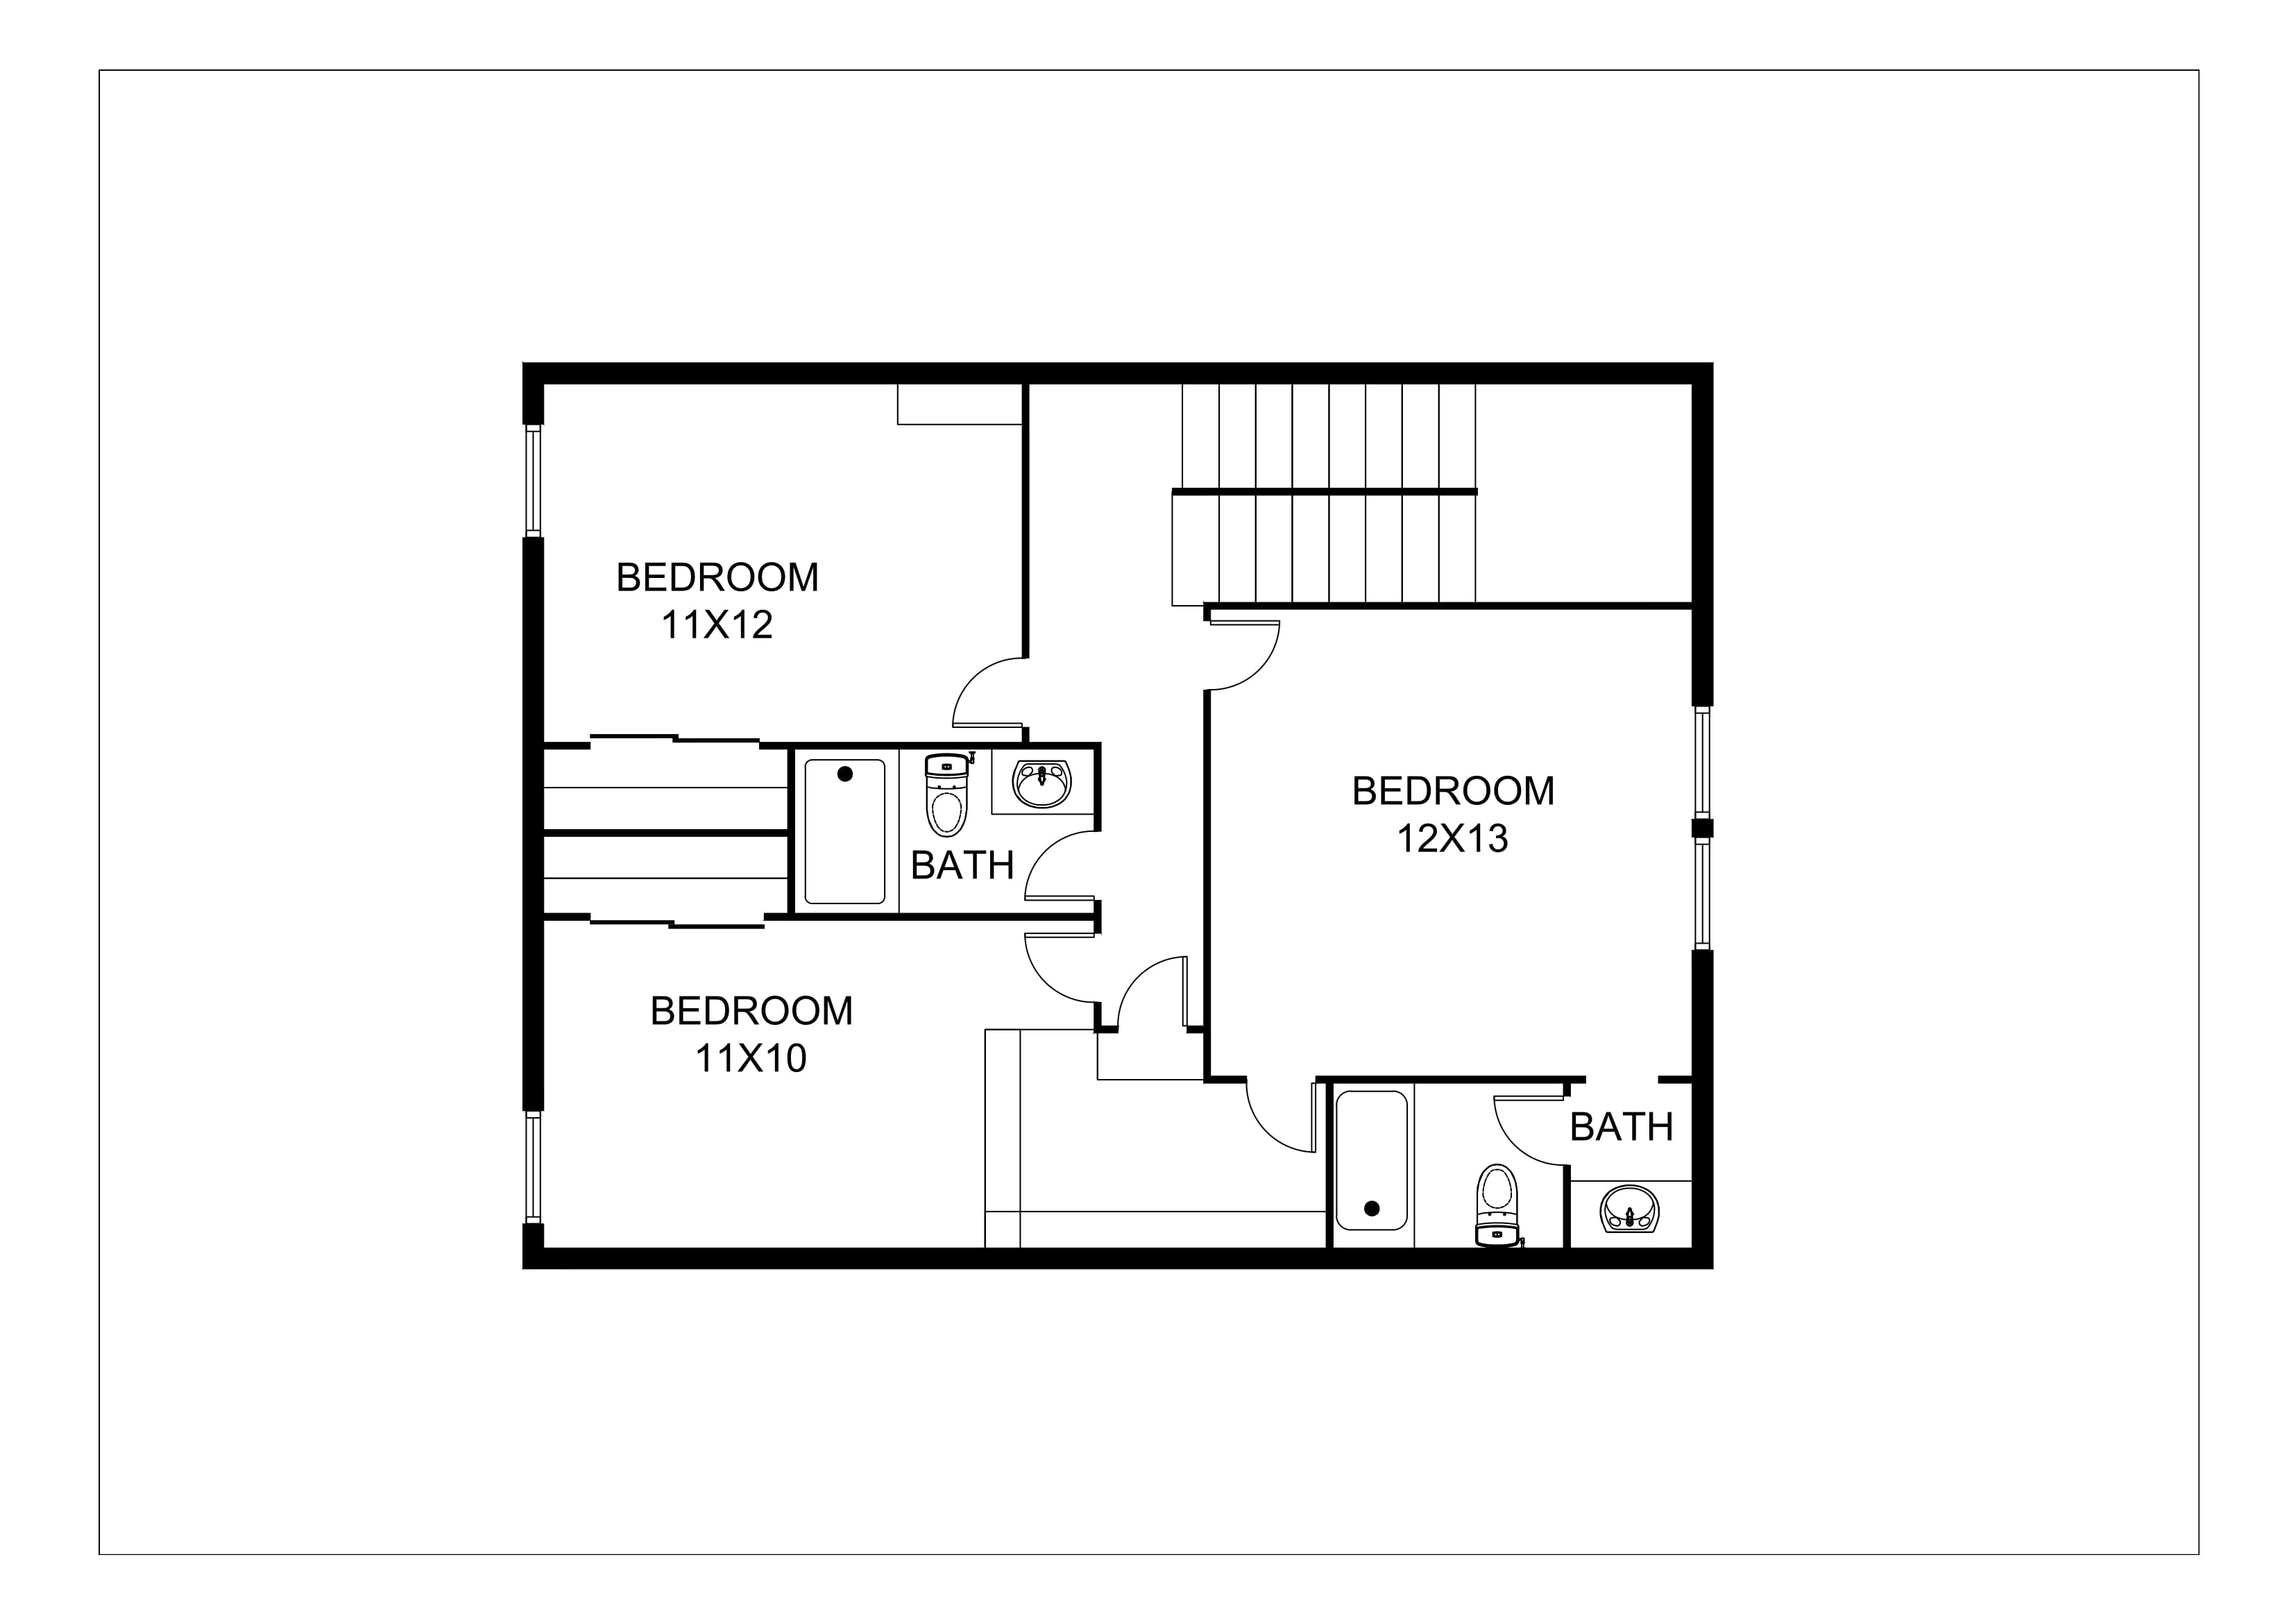 Real estate 2d floor plans design rendering samples for Floor plans real estate